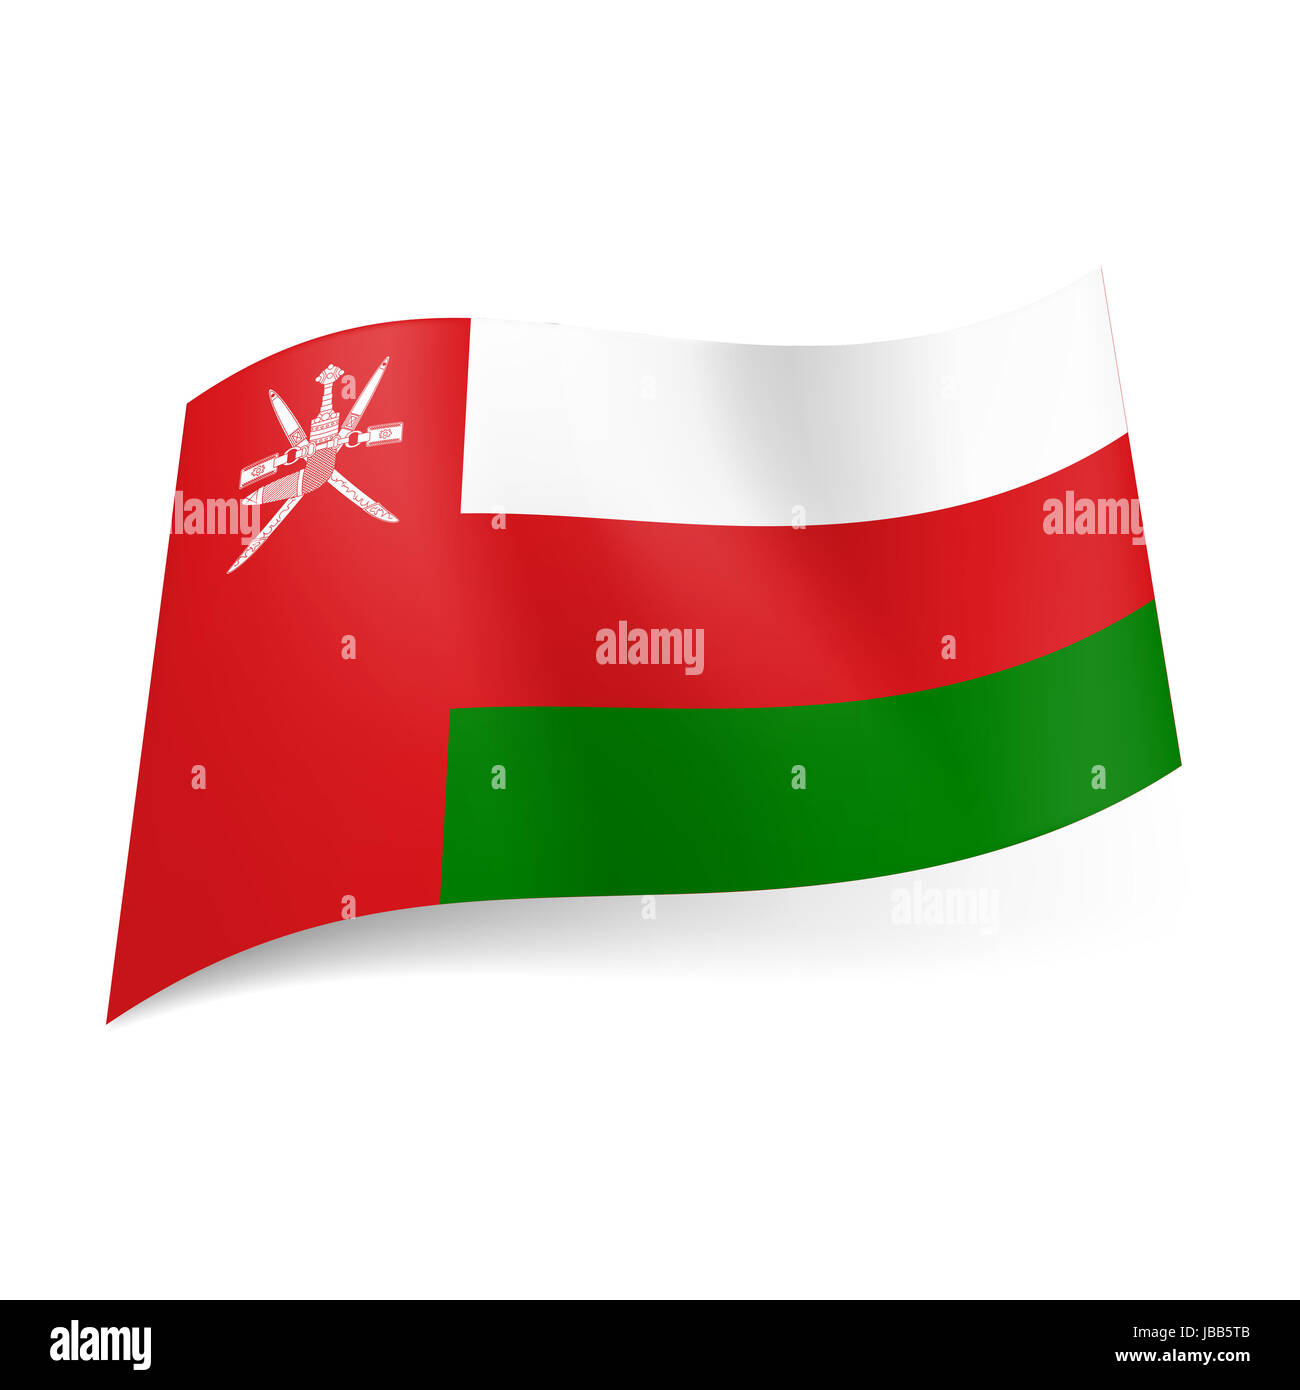 National flag of Oman: white, red and green horizontal stripes, vertical red band with national emblem on lest side - Stock Image